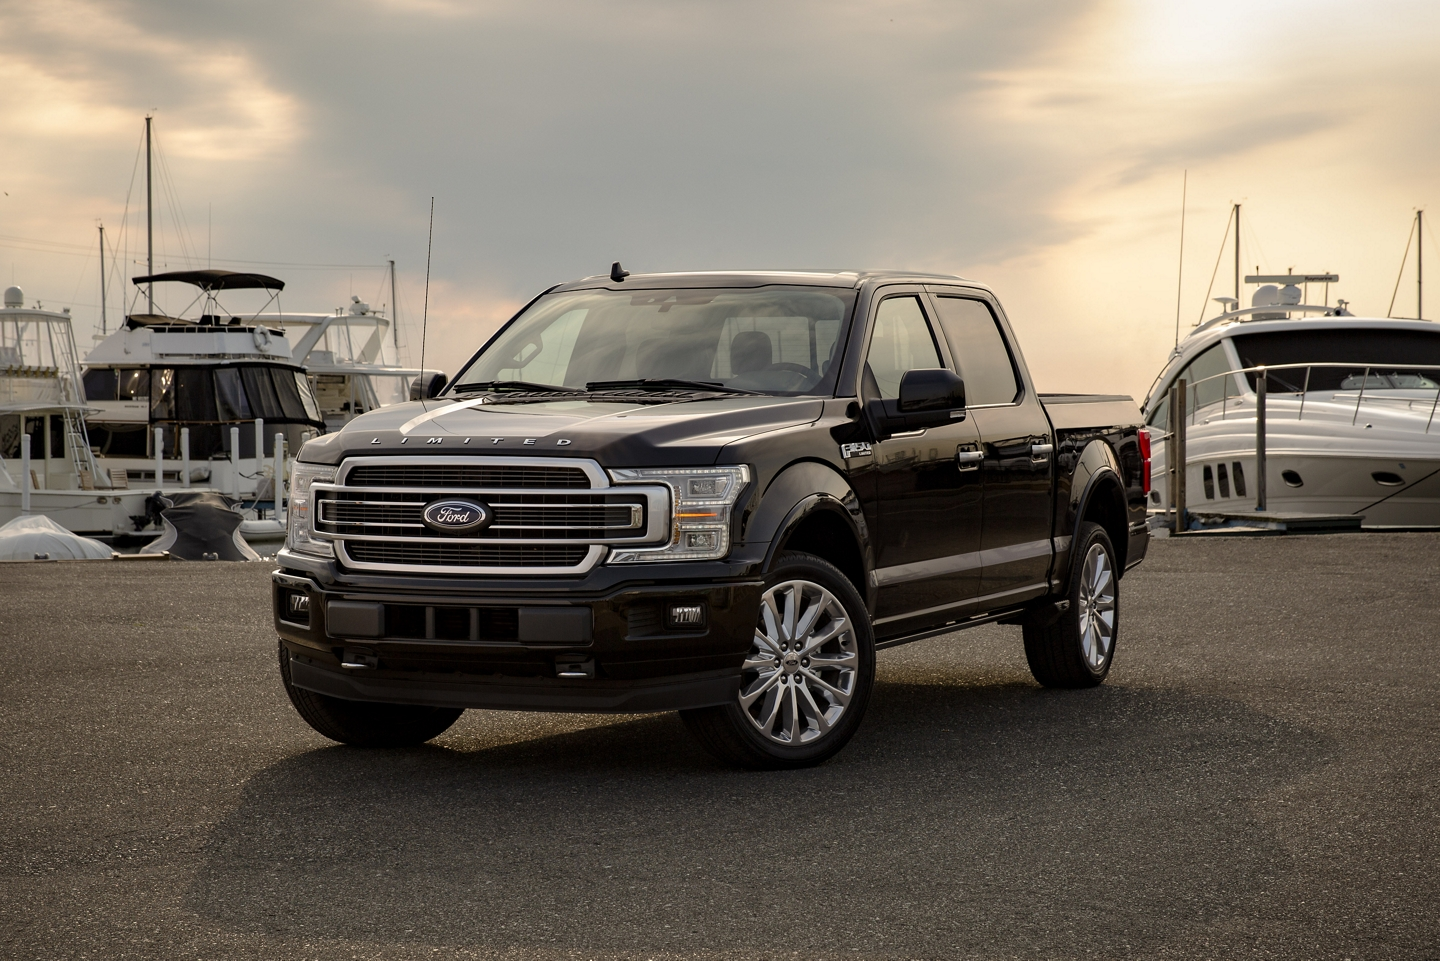 2020 Ford F-150 Key Features near Mesquite, TX